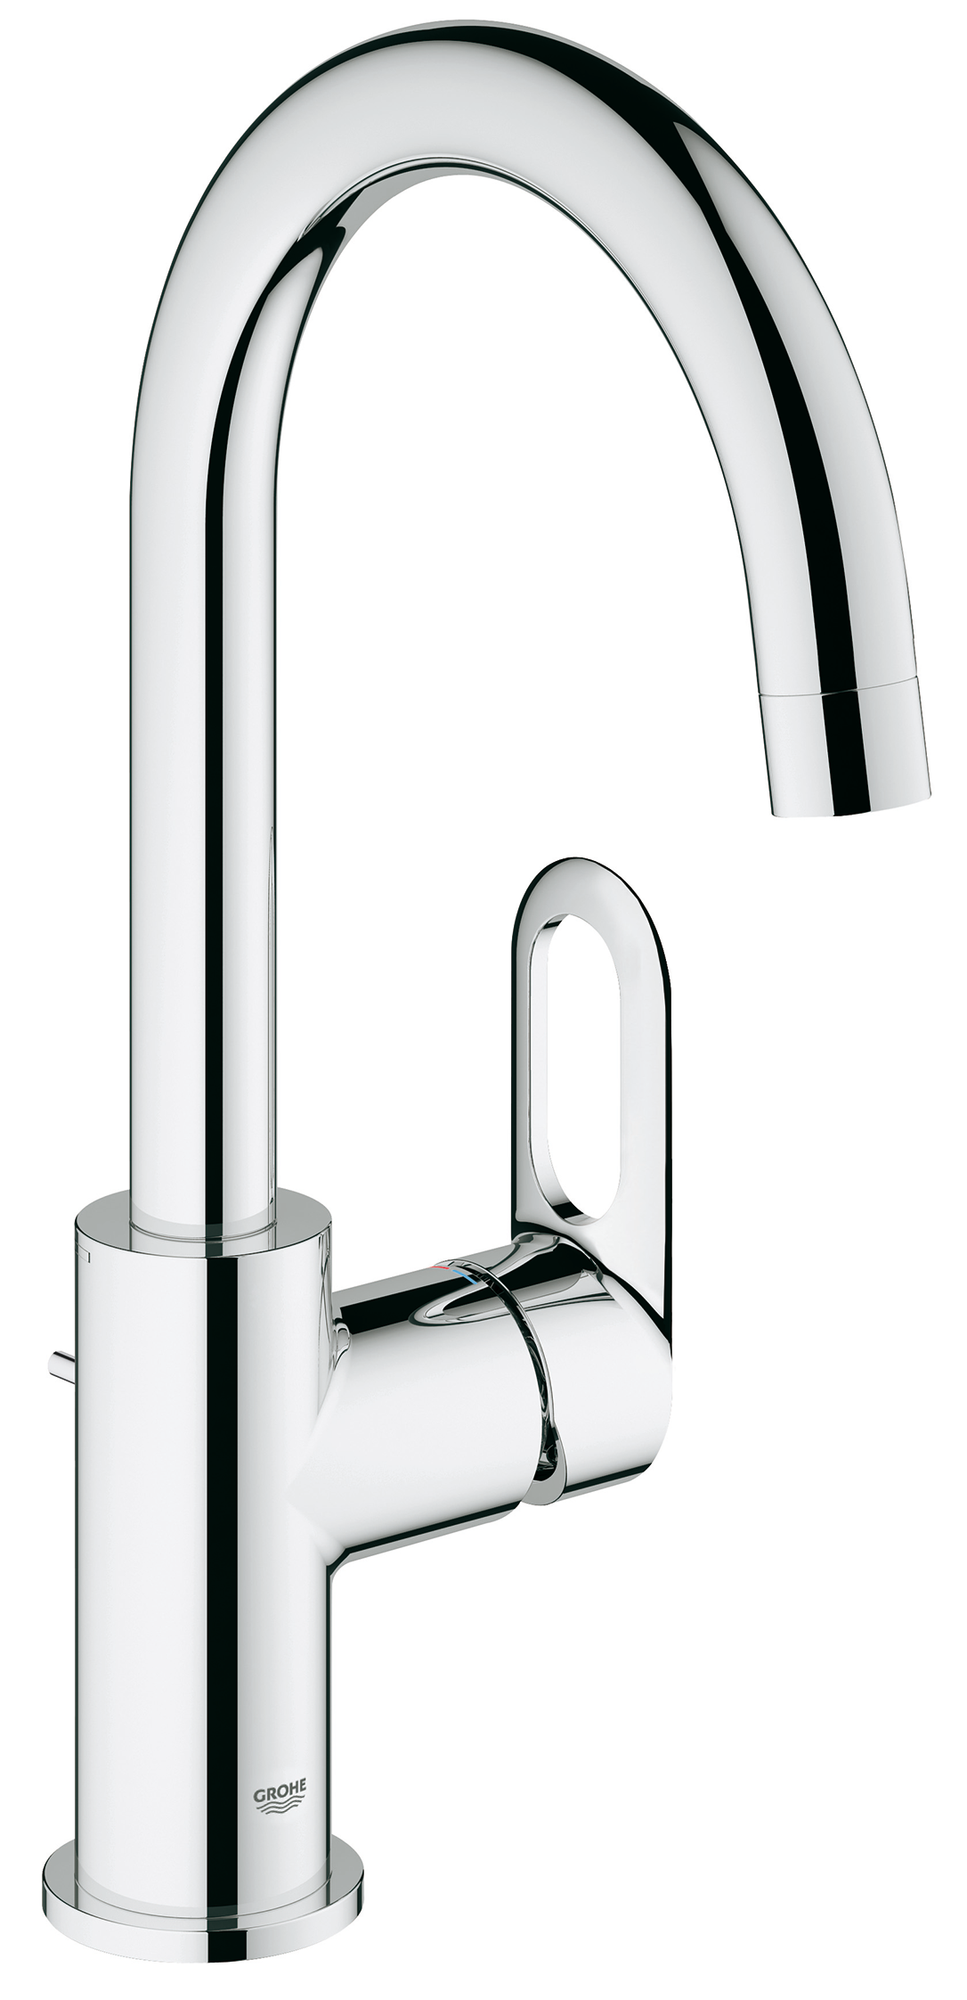 Grohe Bauloop Mitigeur Monocommande Lavabo Taille L Xtwostore